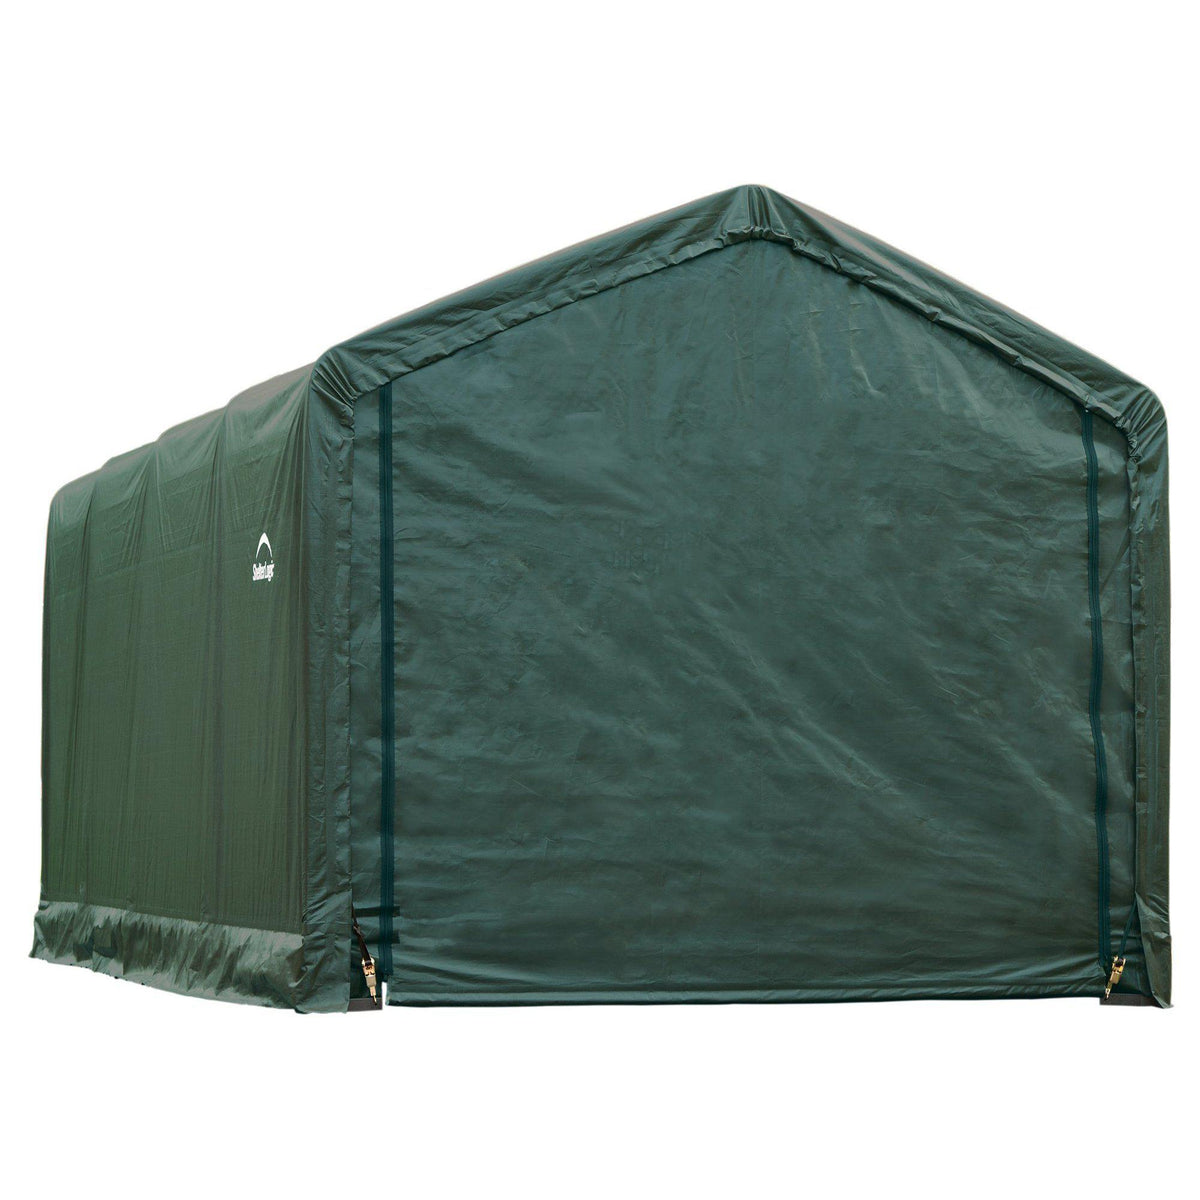 ShelterLogic Shelter Tube Storage Shelter